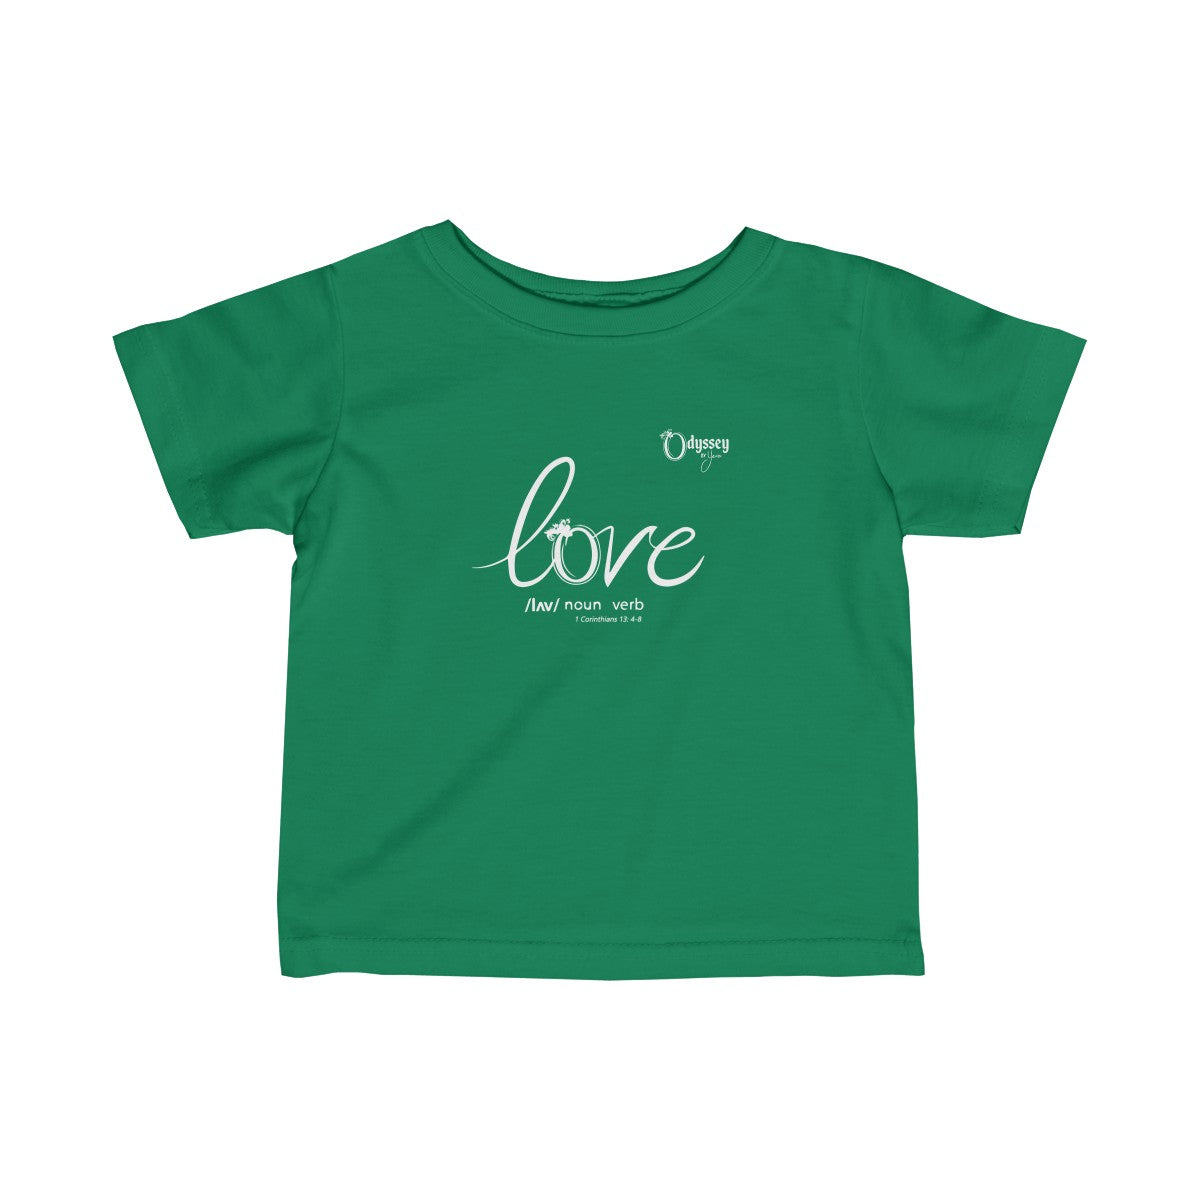 Odyssey Love Infant Tee